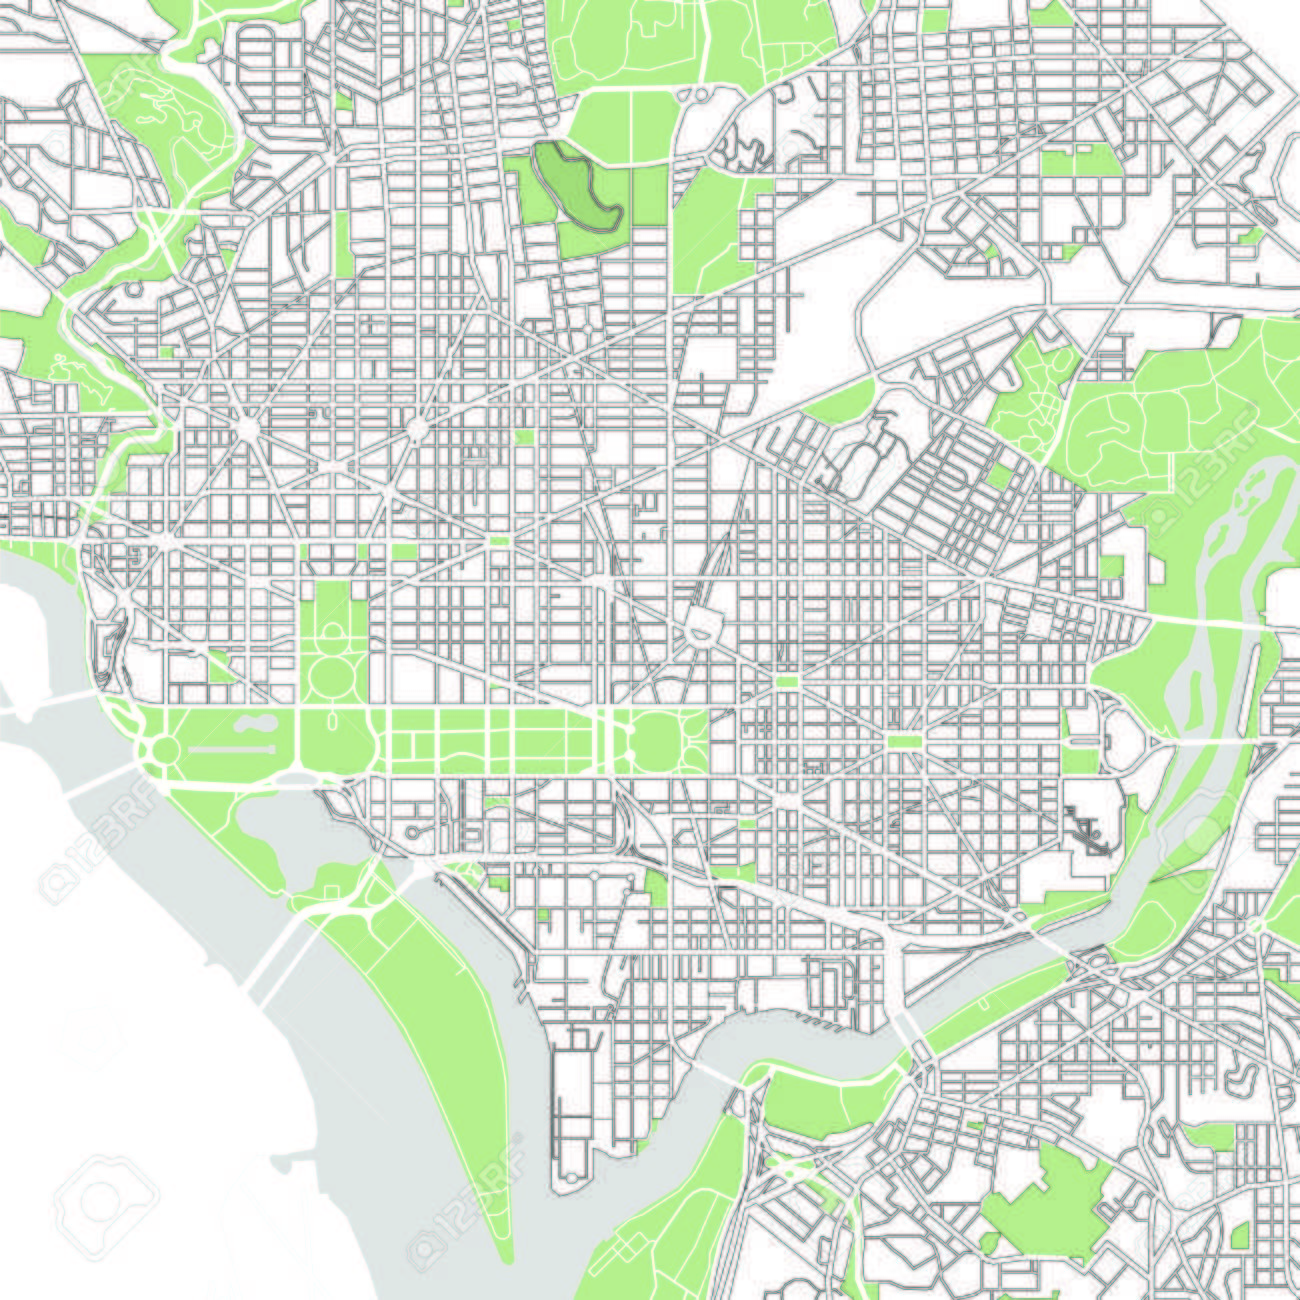 map of the city of Washington, D.C., USA Dc Usa Map on detroit usa map, seattle usa map, co usa map, wisconsin usa map, ut usa map, ri usa map, nj usa map, chicago usa map, phoenix usa map, pittsburgh usa map, ia usa map, florida usa map, washington usa map, indiana usa map, puma usa map, philadelphia usa map, tennessee usa map, toronto usa map, ok usa map, mandarin oriental hotel map,